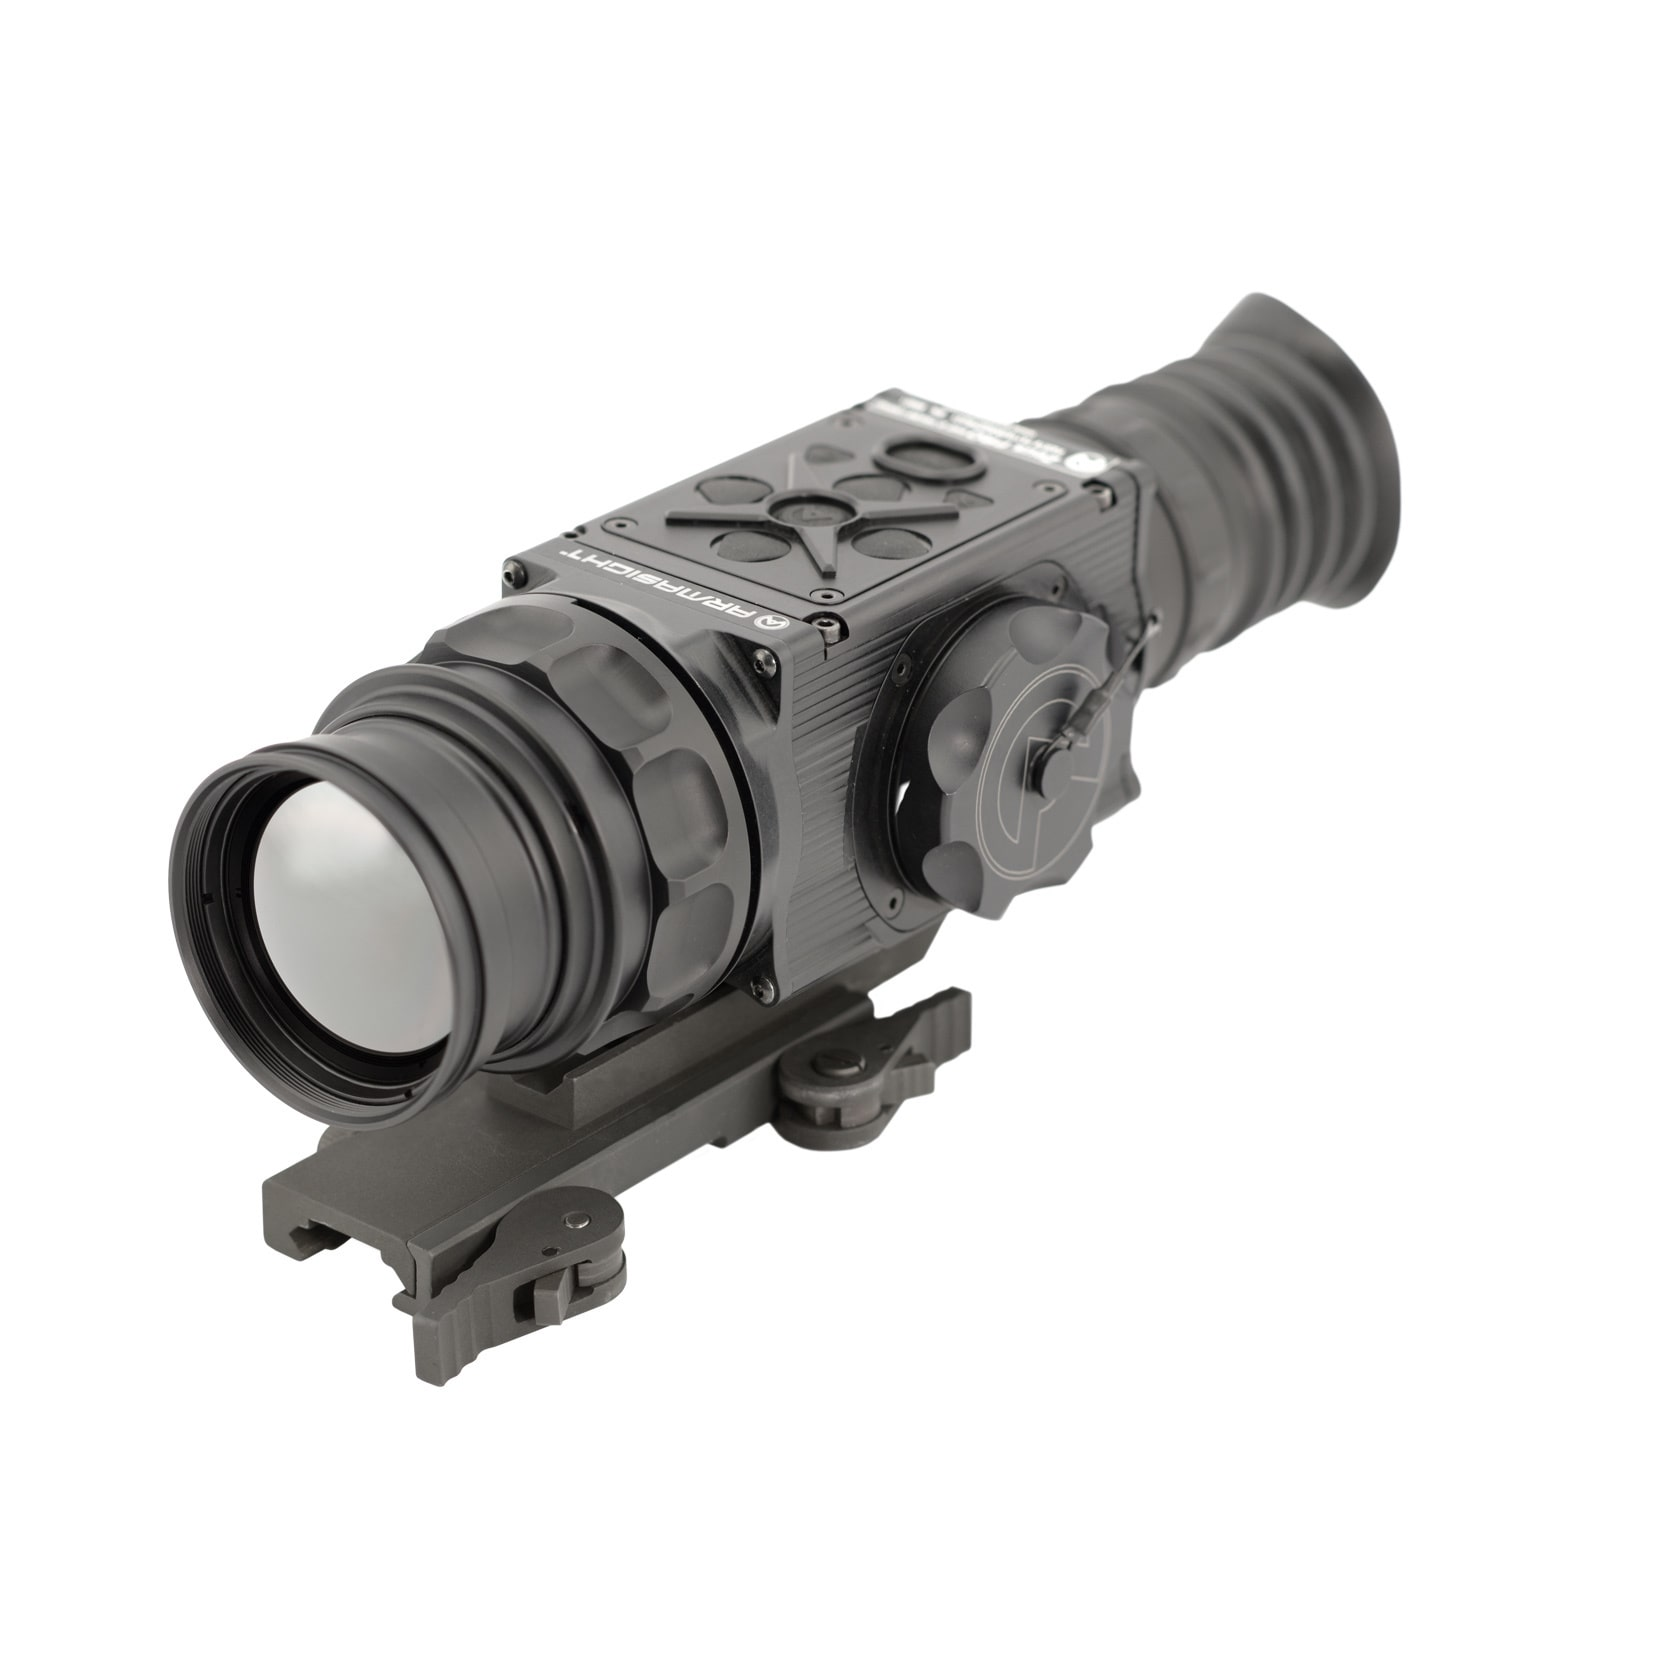 Armasight Zeus-Pro 336 4-16x50 (60 Hz) Thermal IMaging Weapon Sight, FLIR Tau 2 336x256 (17m) 60Hz Core, 50mm Lens by Overstock